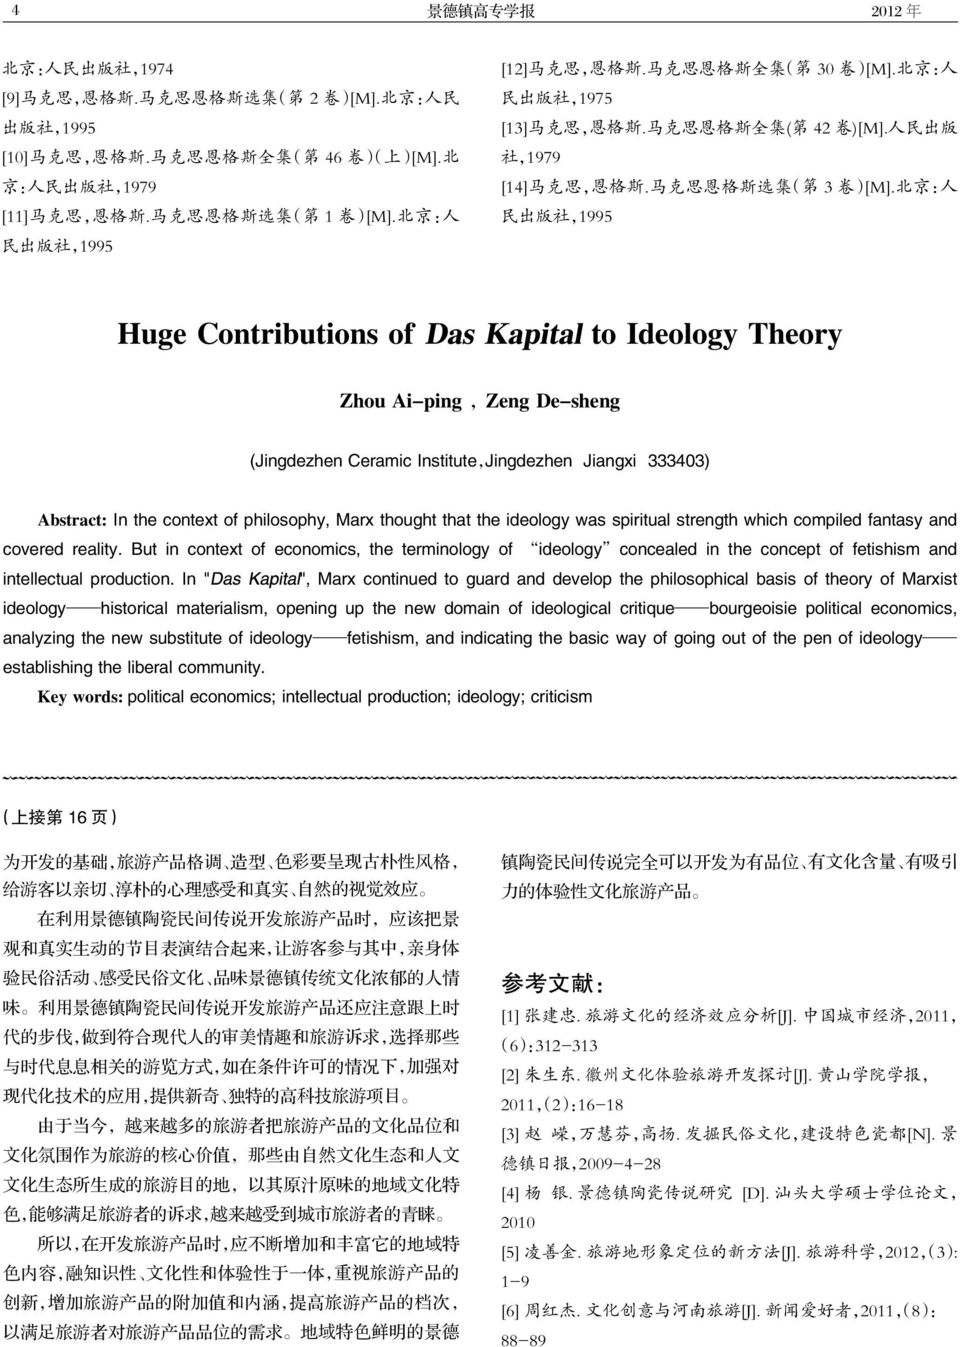 北京 人 民出版社 1995 民出版社 1995 Huge Contributions of to Ideology Theory Zhou Ai-ping Zeng De-sheng (Jingdezhen Ceramic Institute Jingdezhen Jiangxi 333403) Abstract: In the context of philosophy, Marx